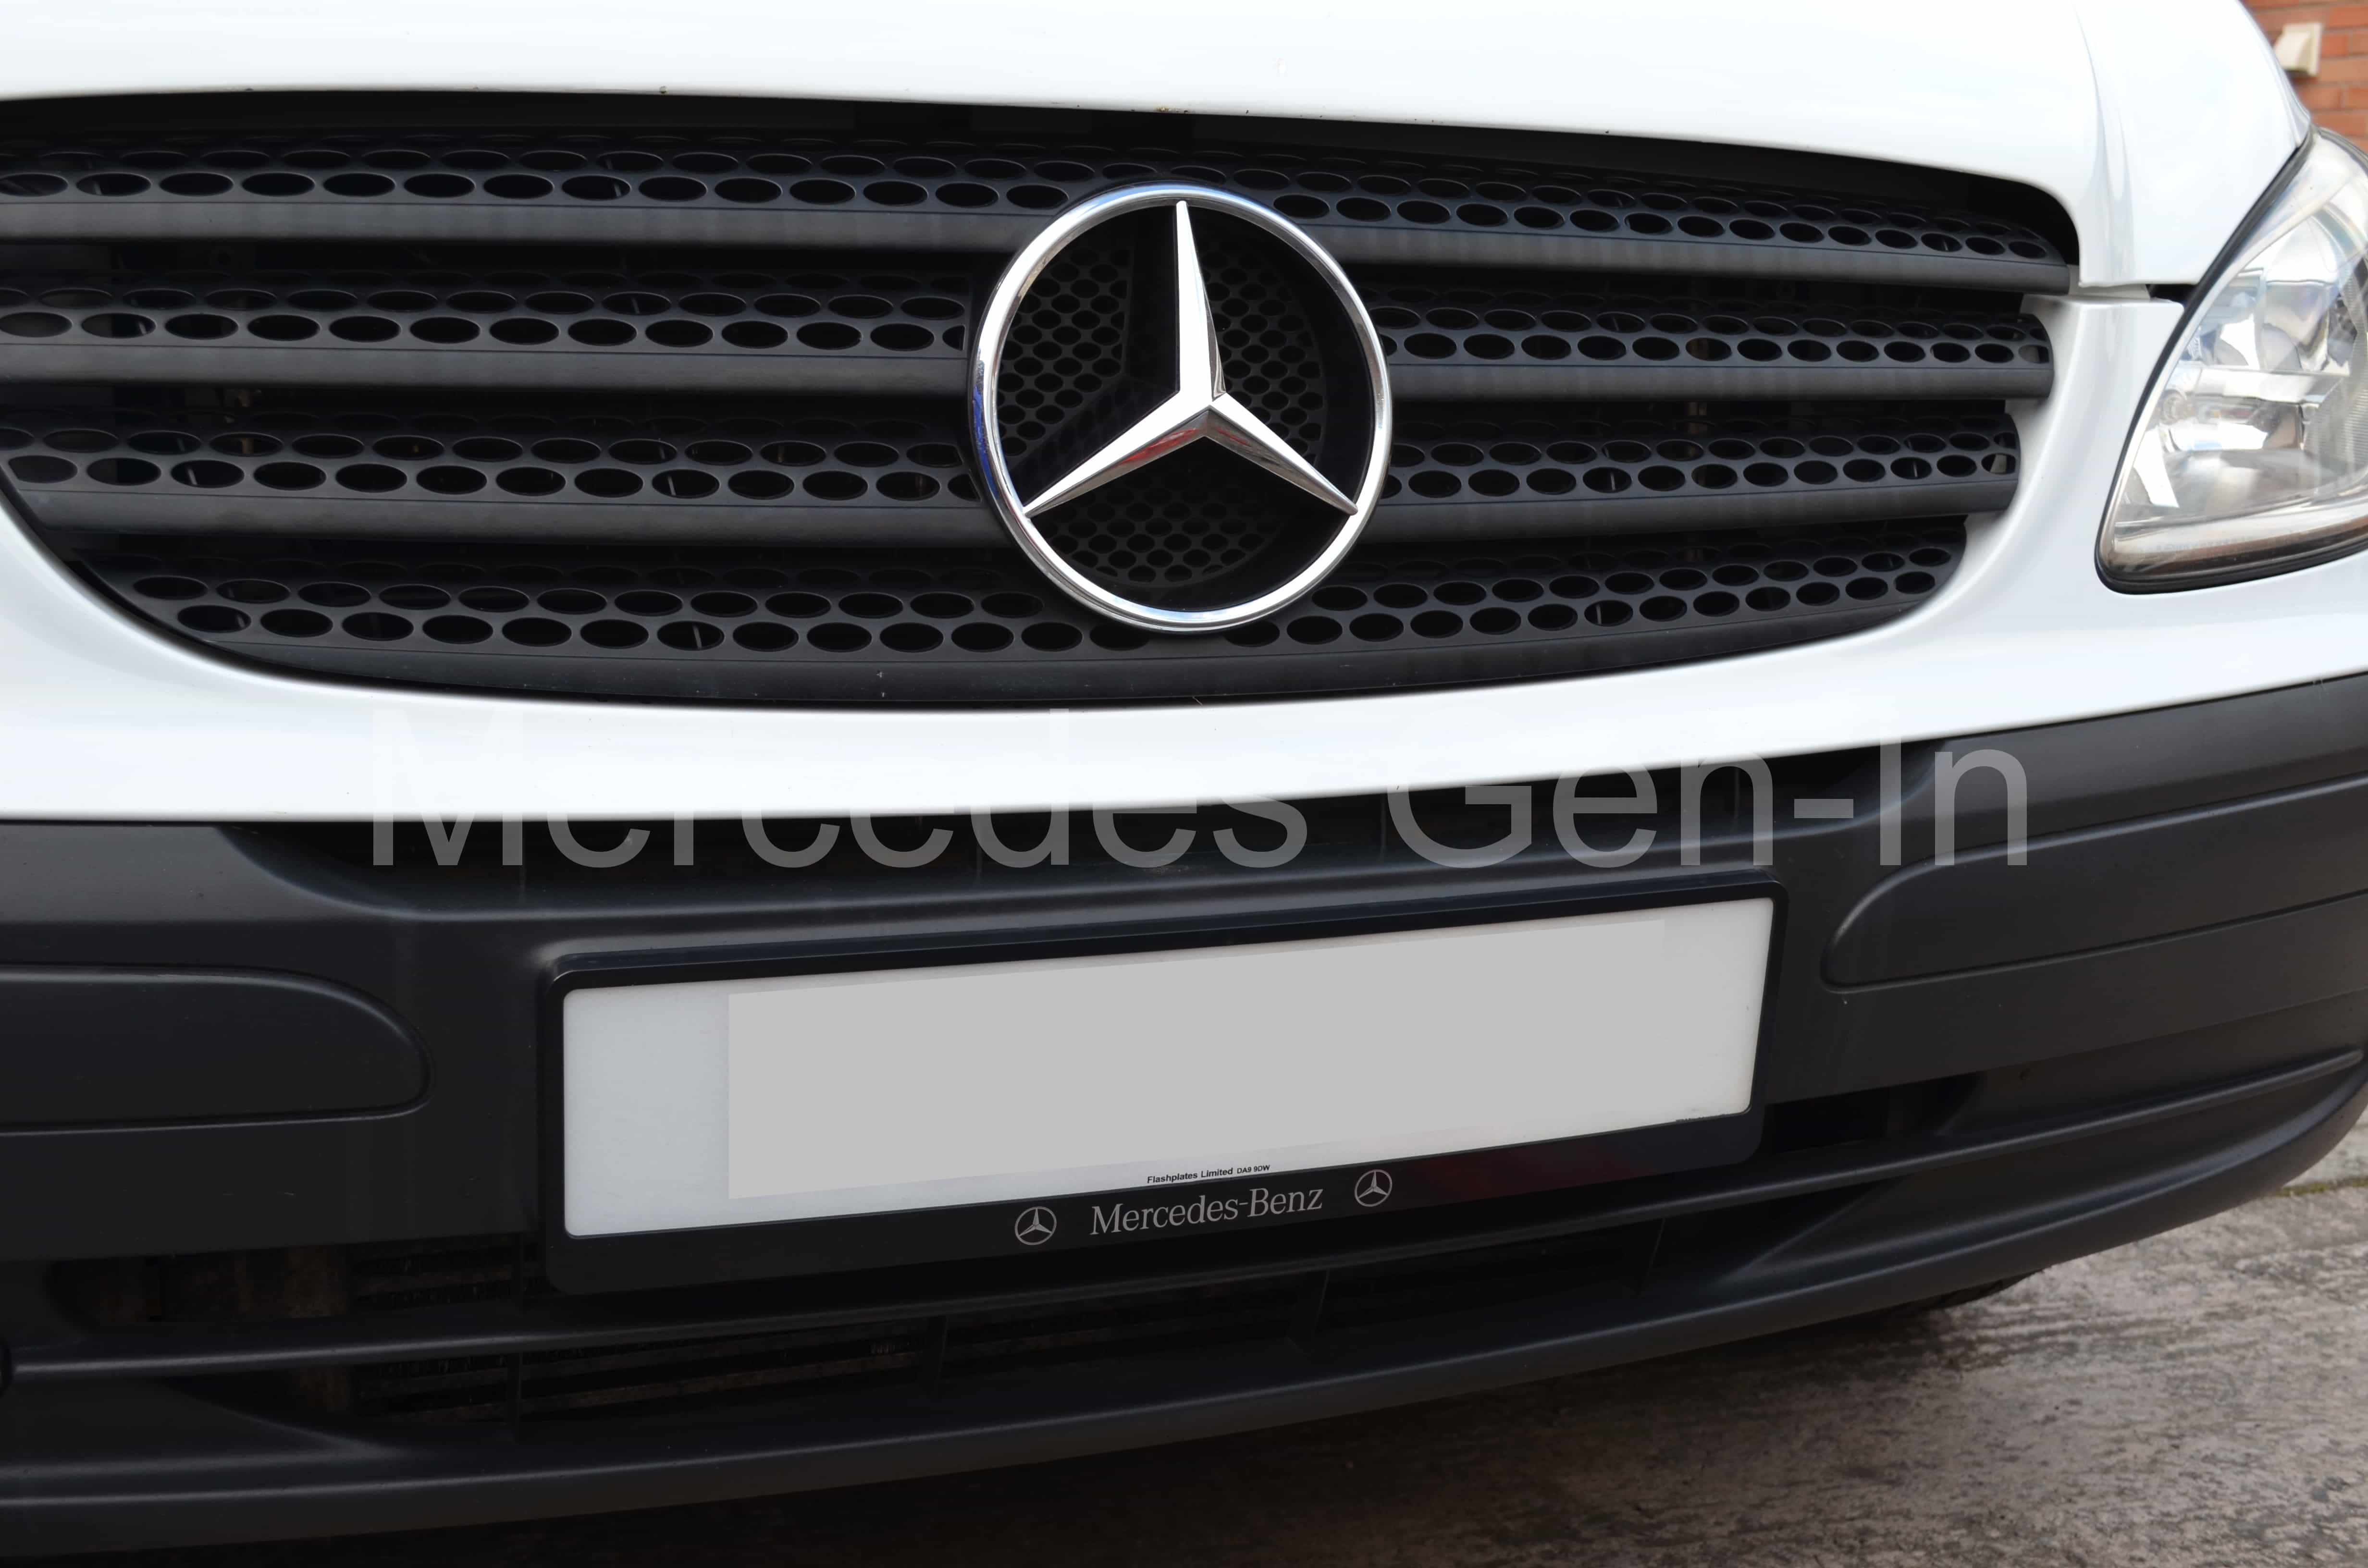 Mercedes Vito W639 Number Plate Frame & Mercedes Benz Registration Plate Frame - Fixing